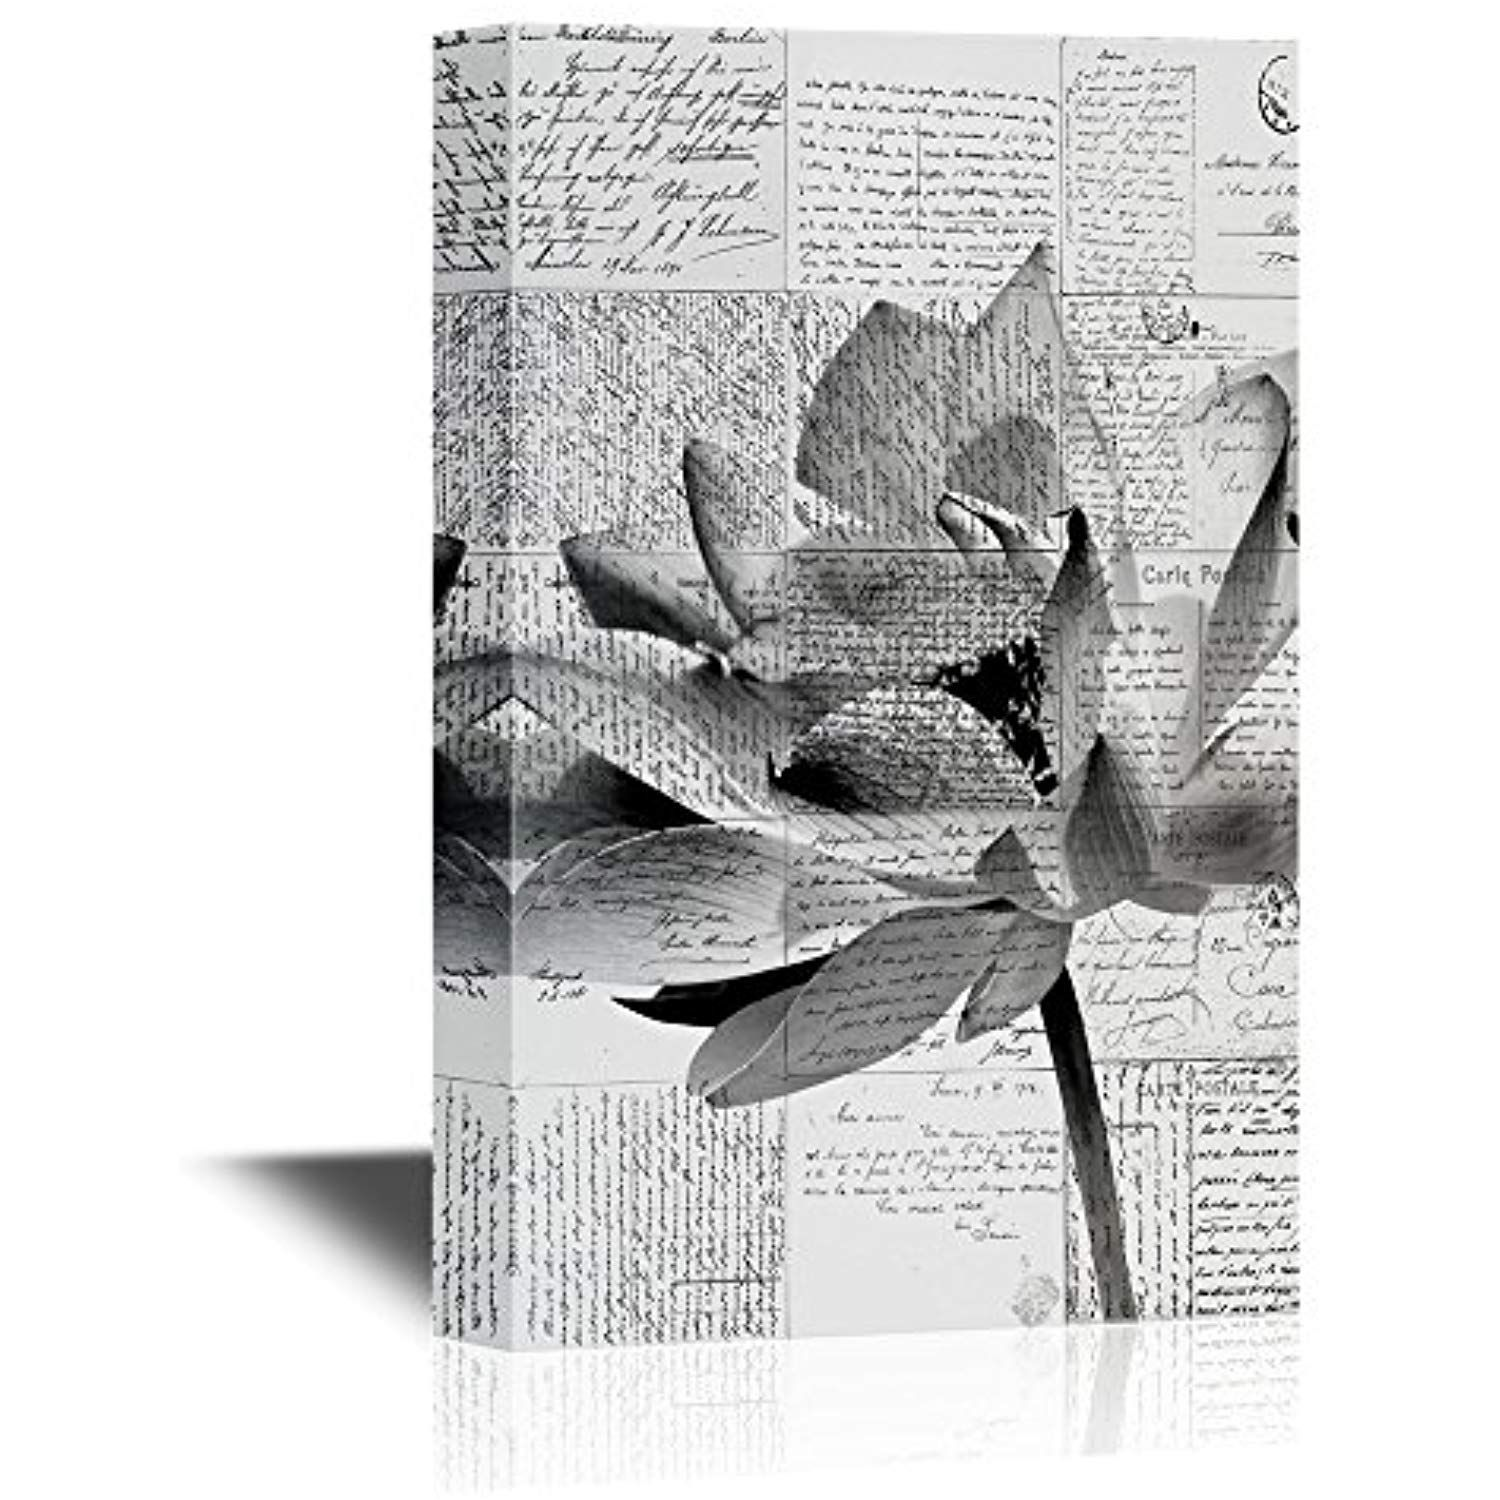 Canvas Art Wall Decor Lotus Flowers Gallery 12x18 inches Wall26